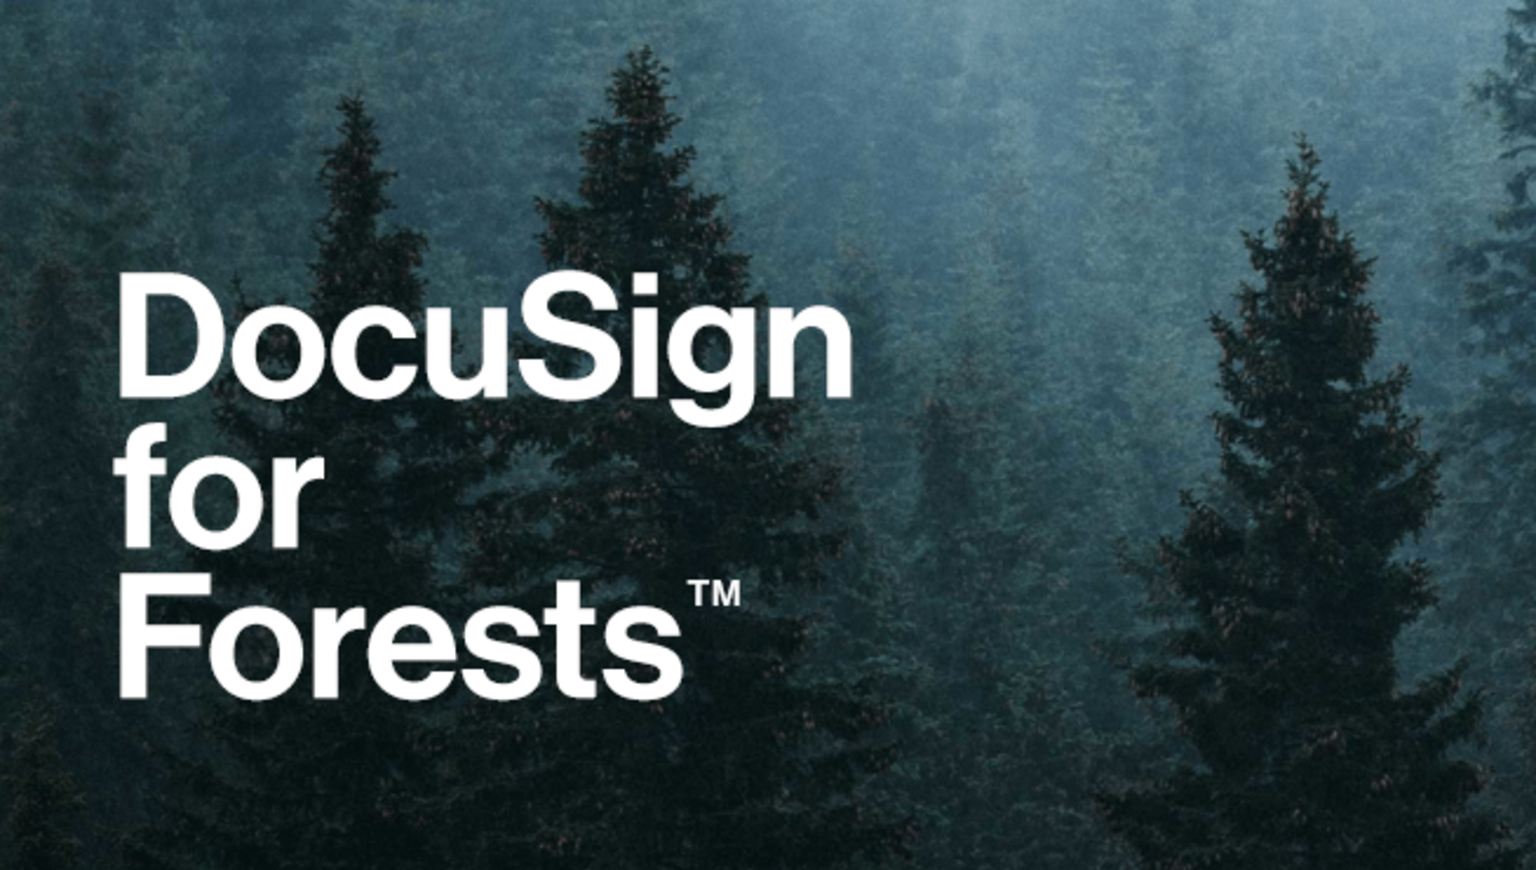 DocuSign for Forests